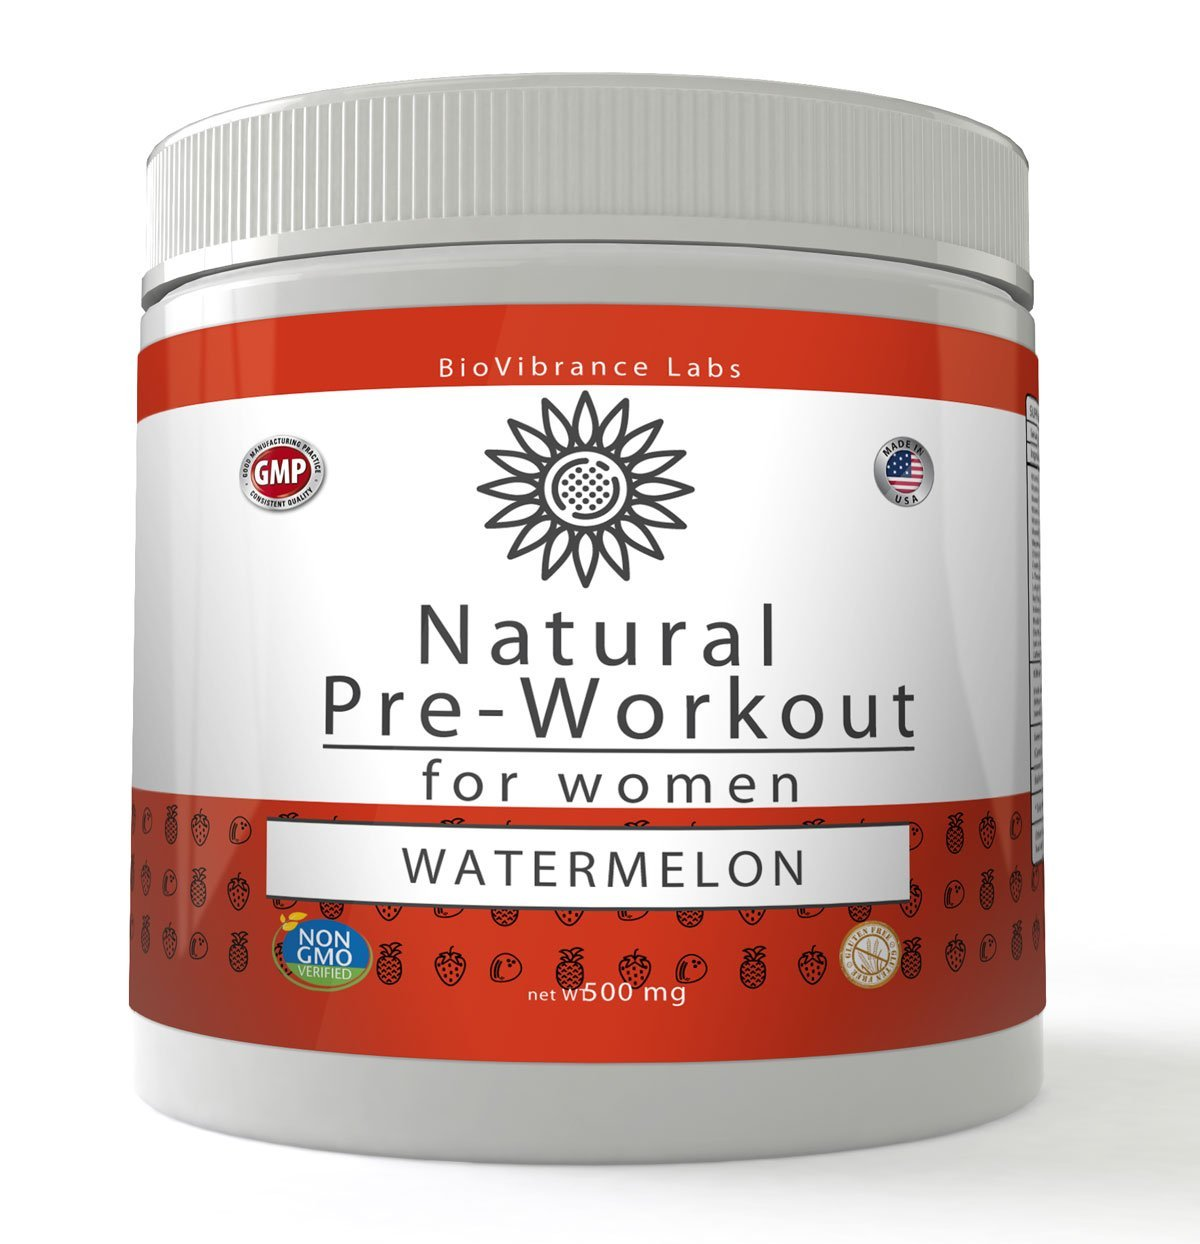 BioVibrance Natural Pre Workout -Healthy Pre Workout Drink For Women -Maximize Your Workout Without the Crash!